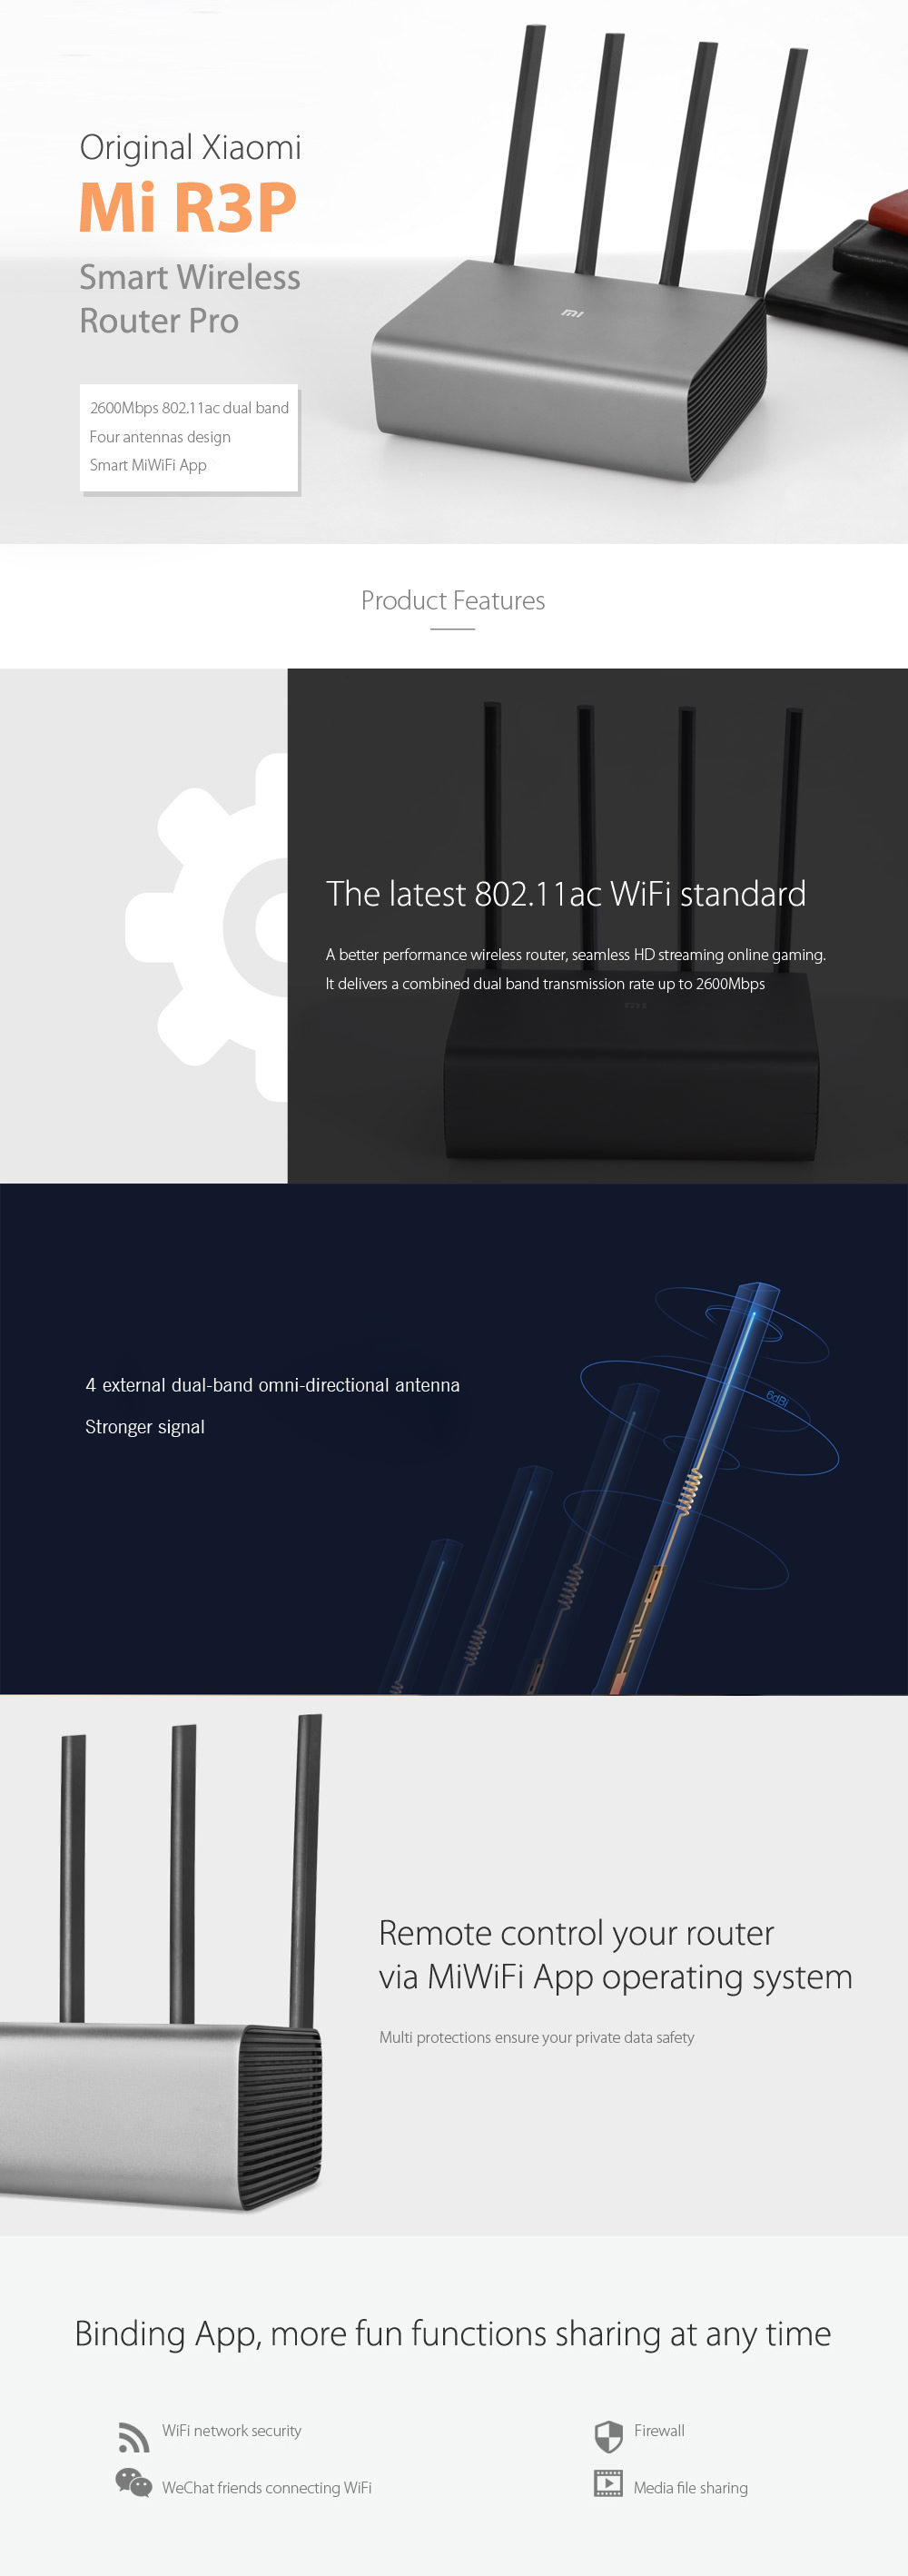 Original Xiaomi Mi R3P 2600Mbps Smart Wireless Router Pro 4 Antenna Dual-band 2.4GHz + 5.0GHz WiFi Network Device